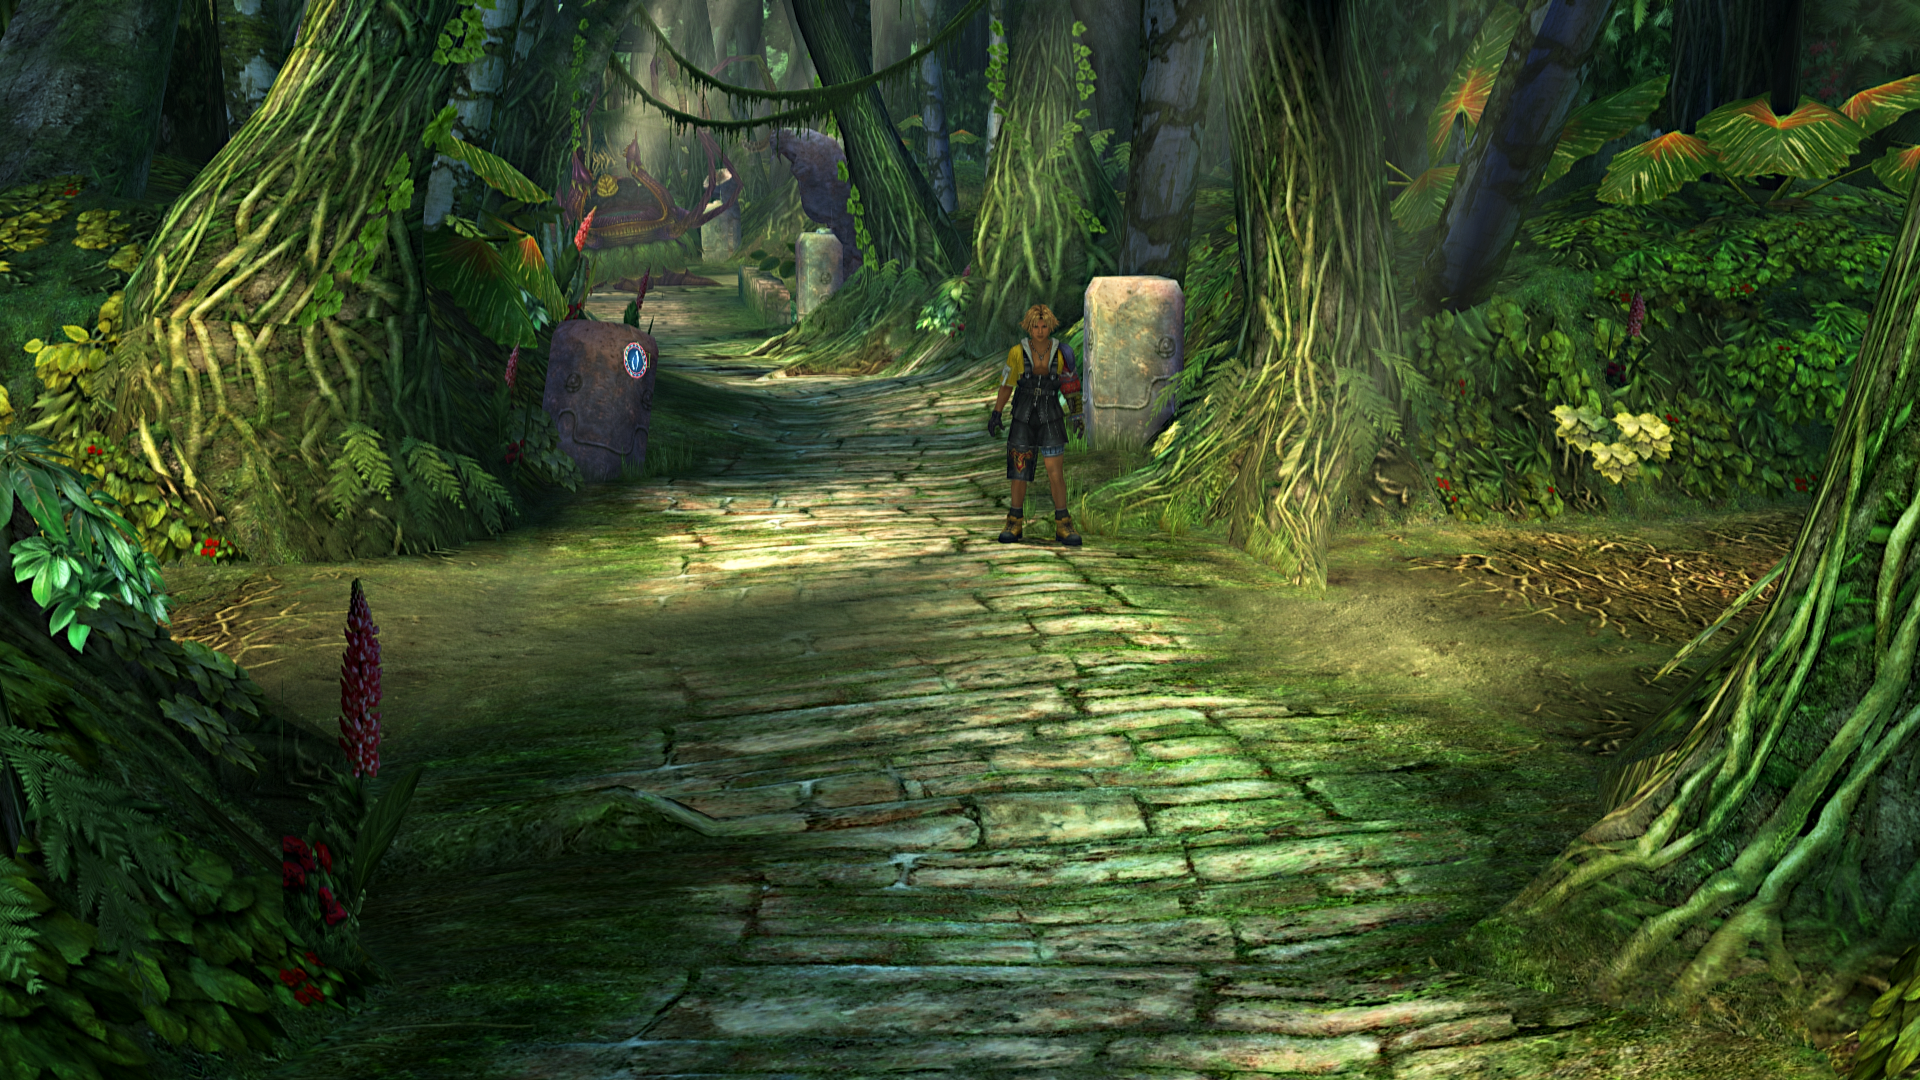 Forest PNG HD Images - 132004